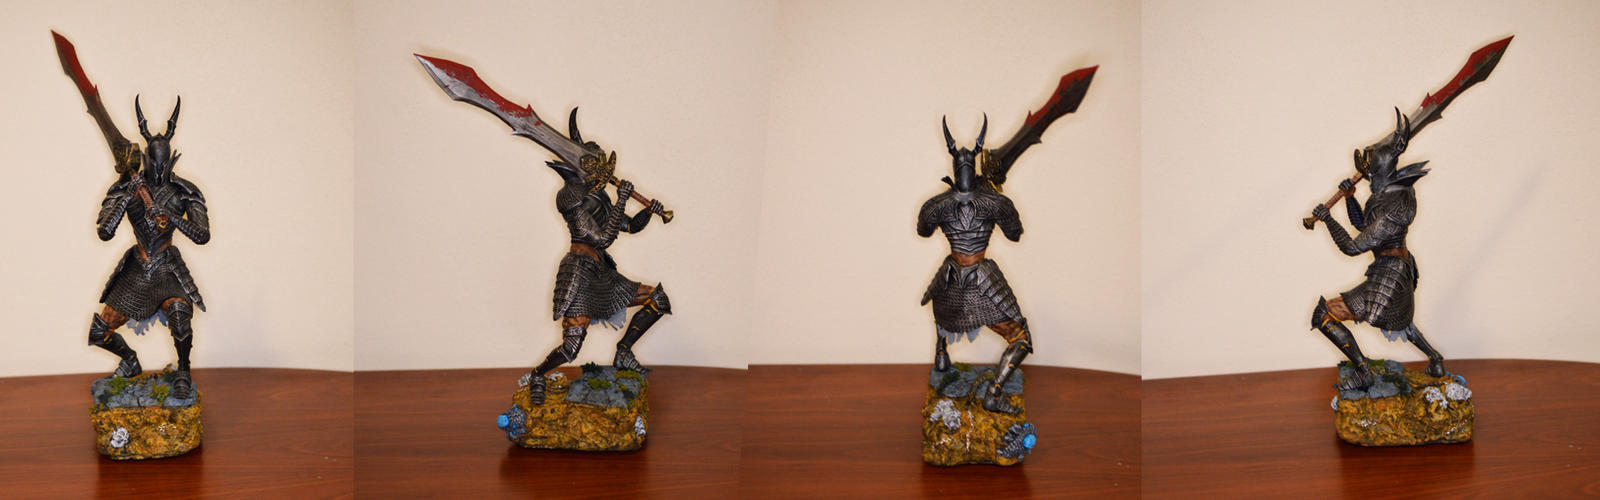 New Black knight for sale by MichaelEastwood